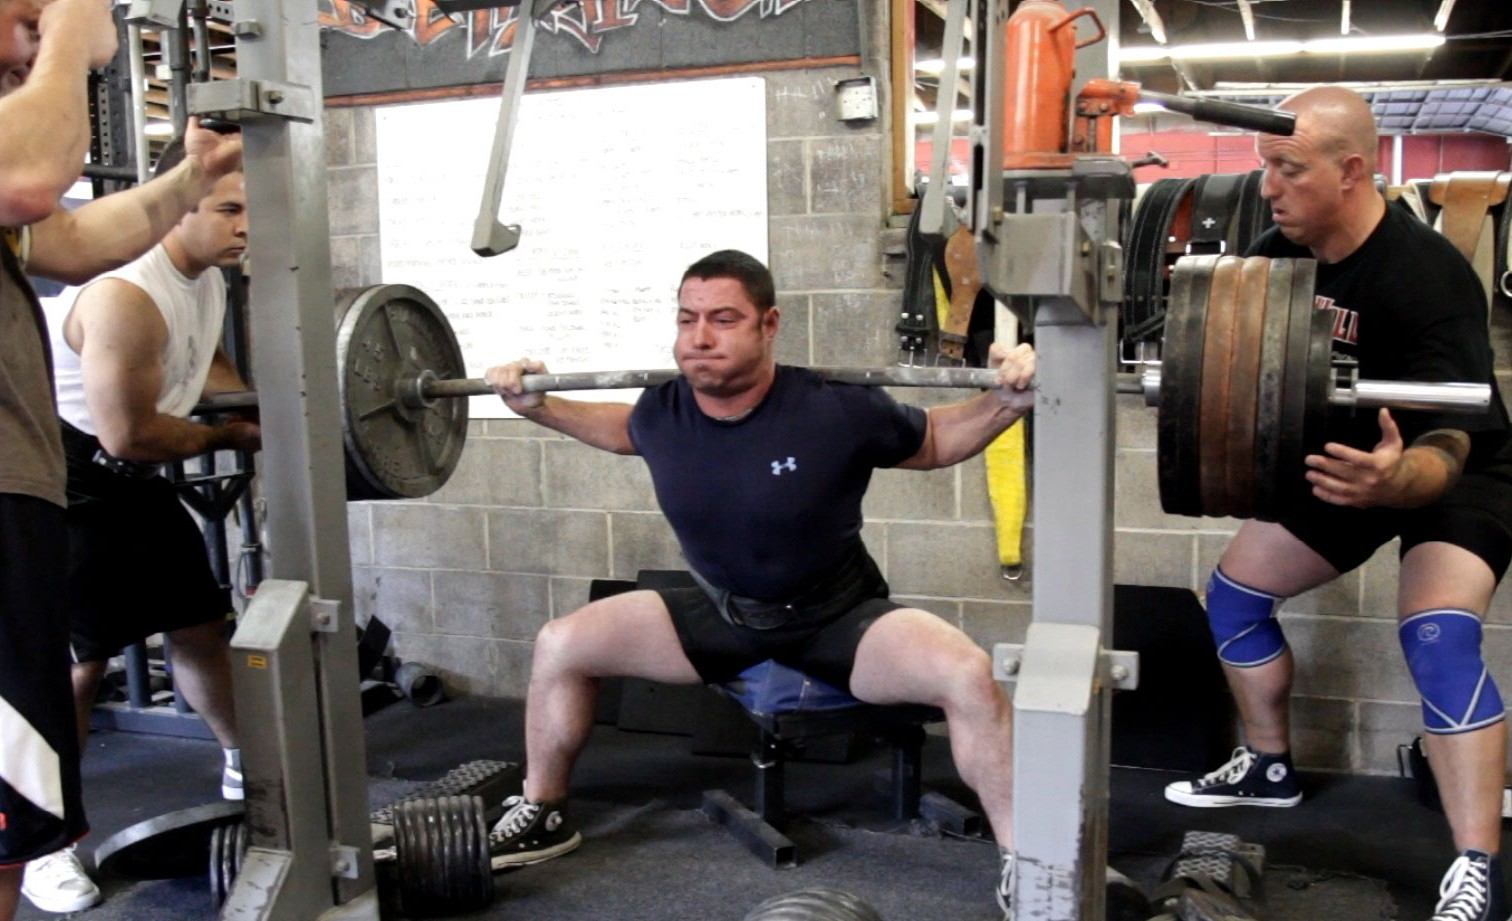 To Box Squat or Not? Part 1 - The Pros - BONVEC STRENGTH